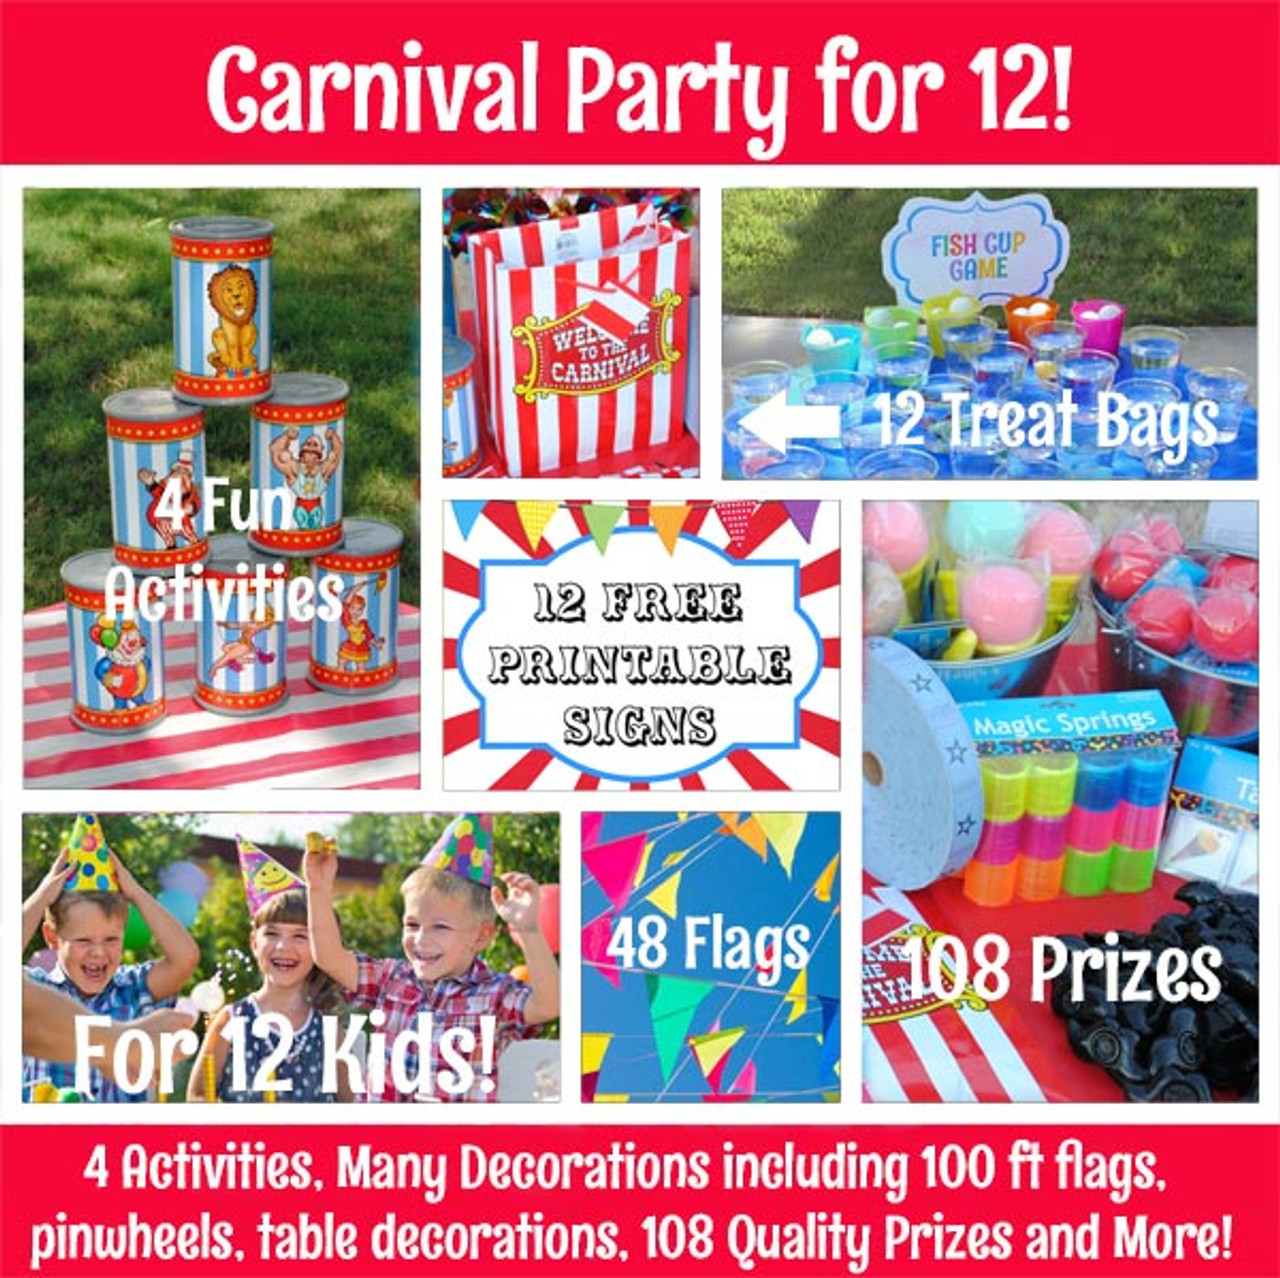 Prizes for kids free